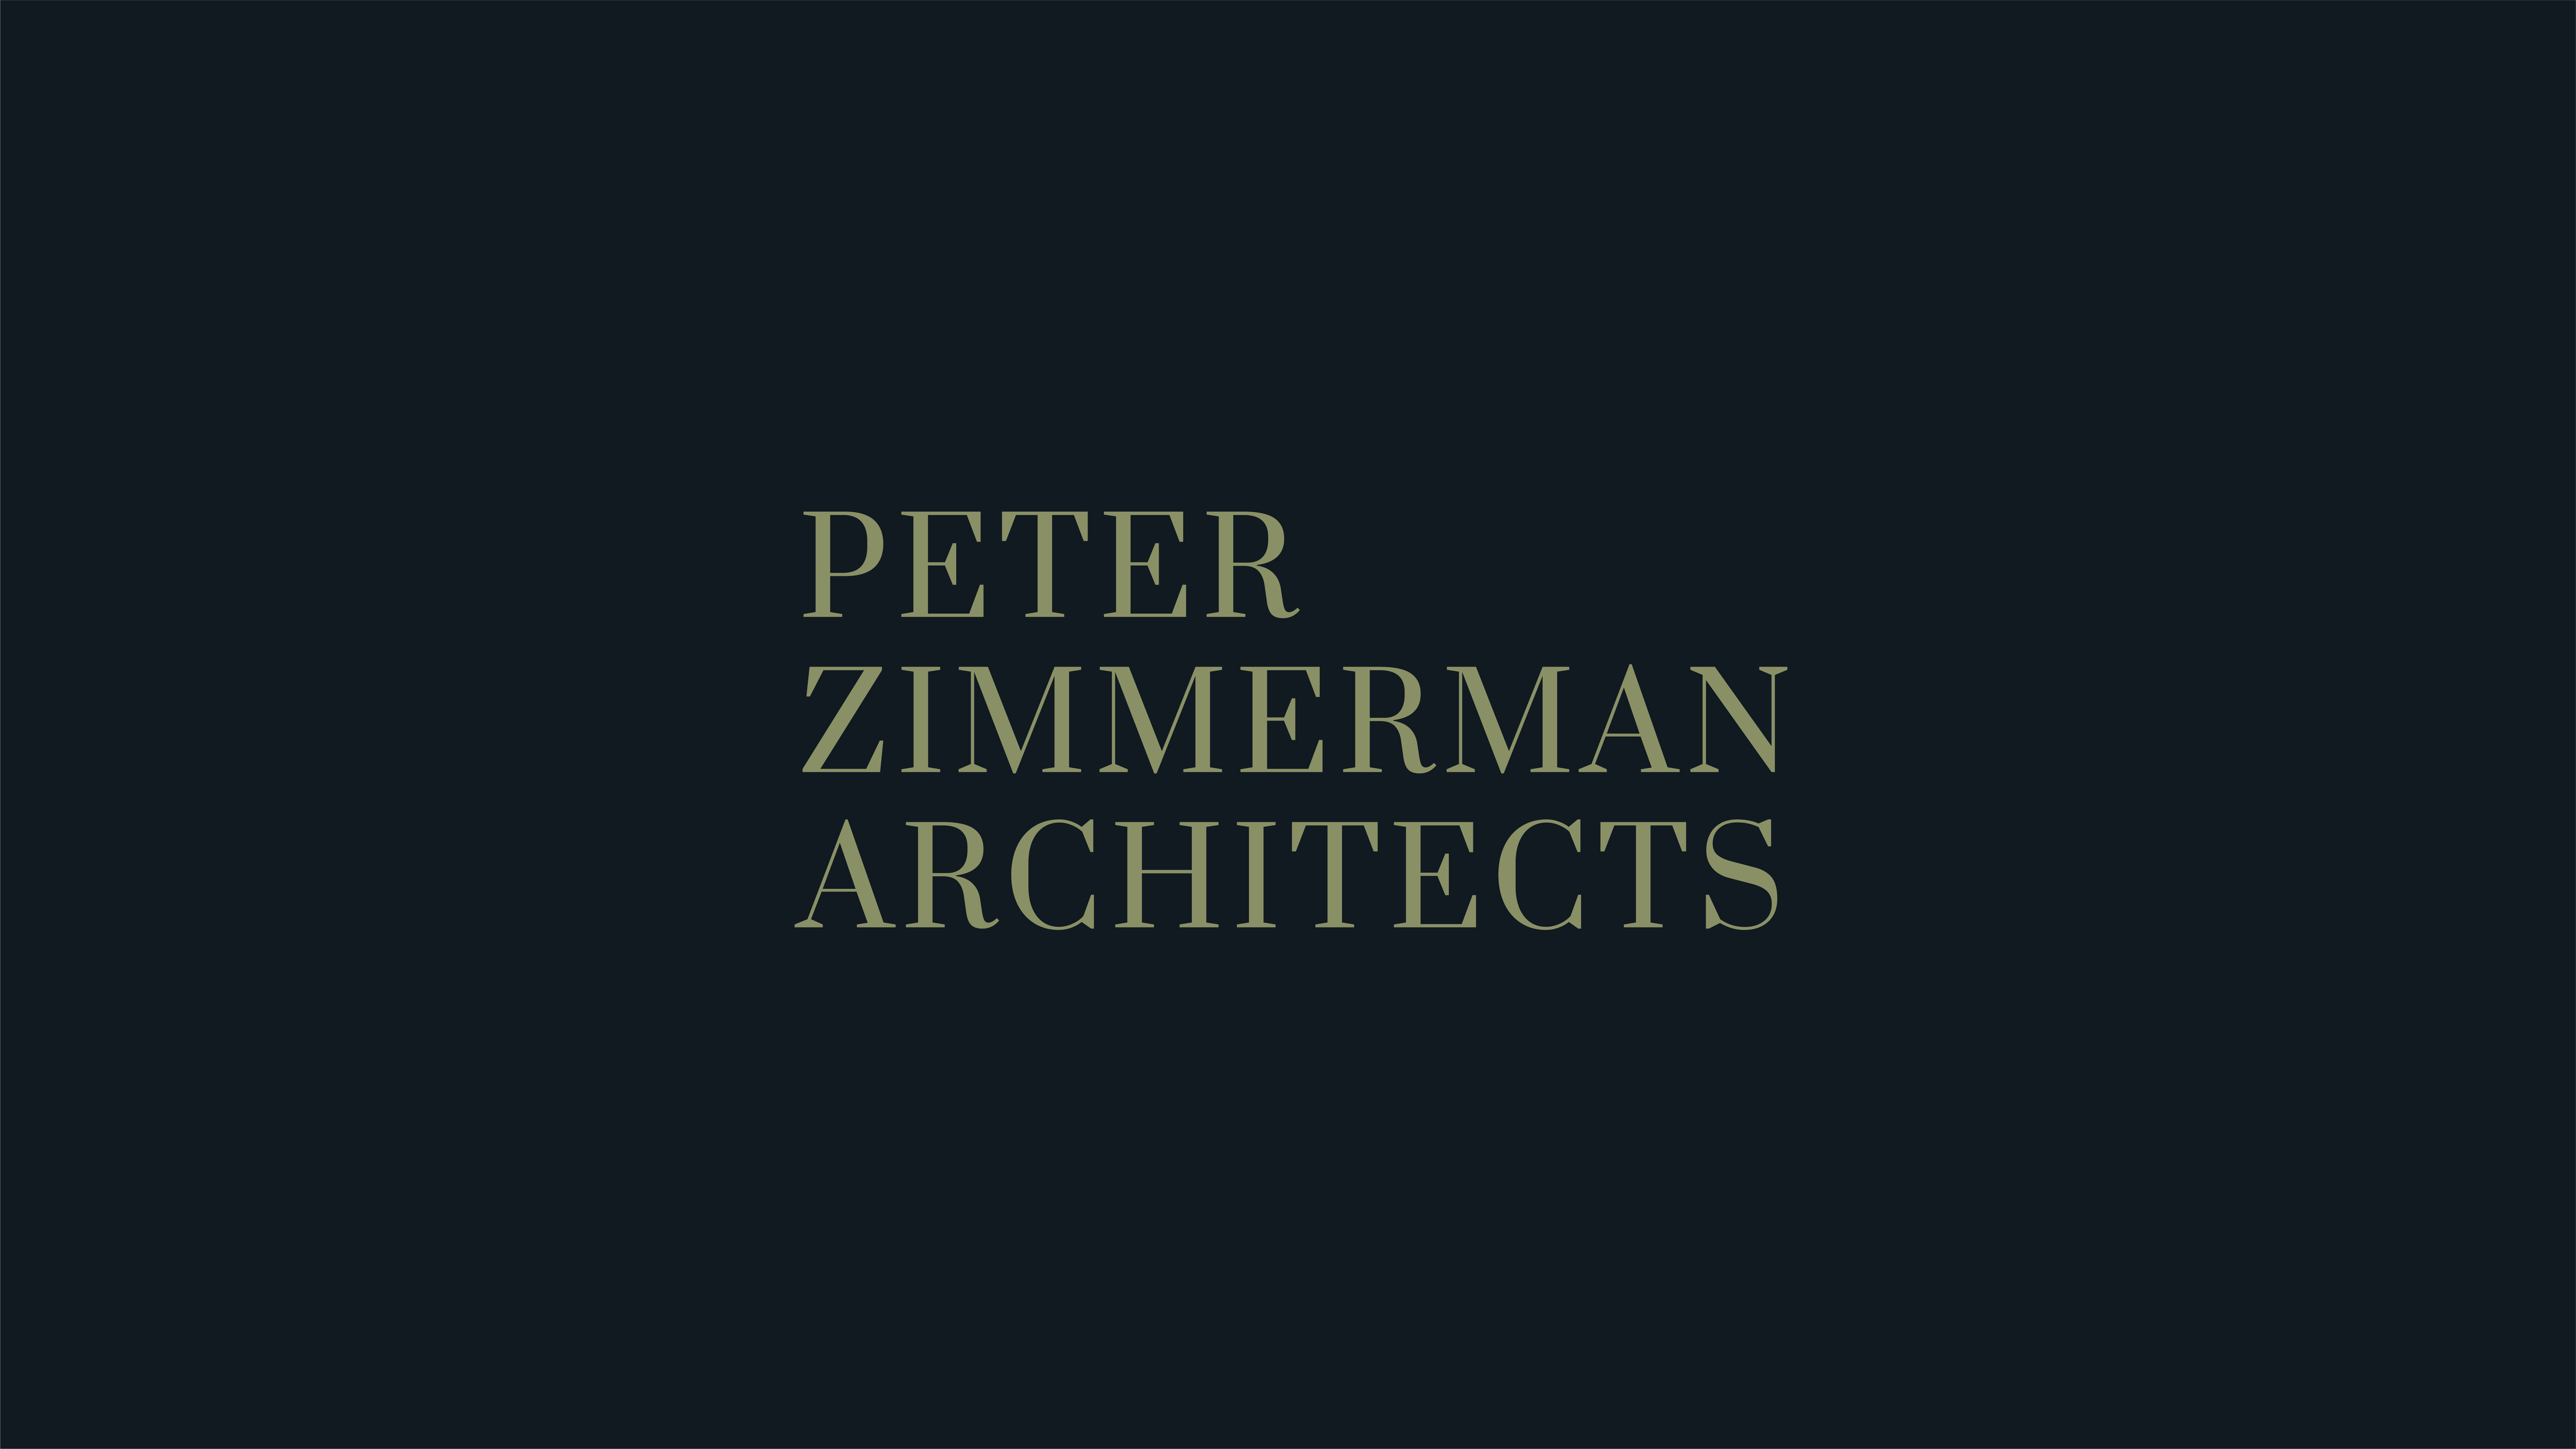 The secondary logo for Peter Zimmerman Architects demonstrates the use of a serif font.